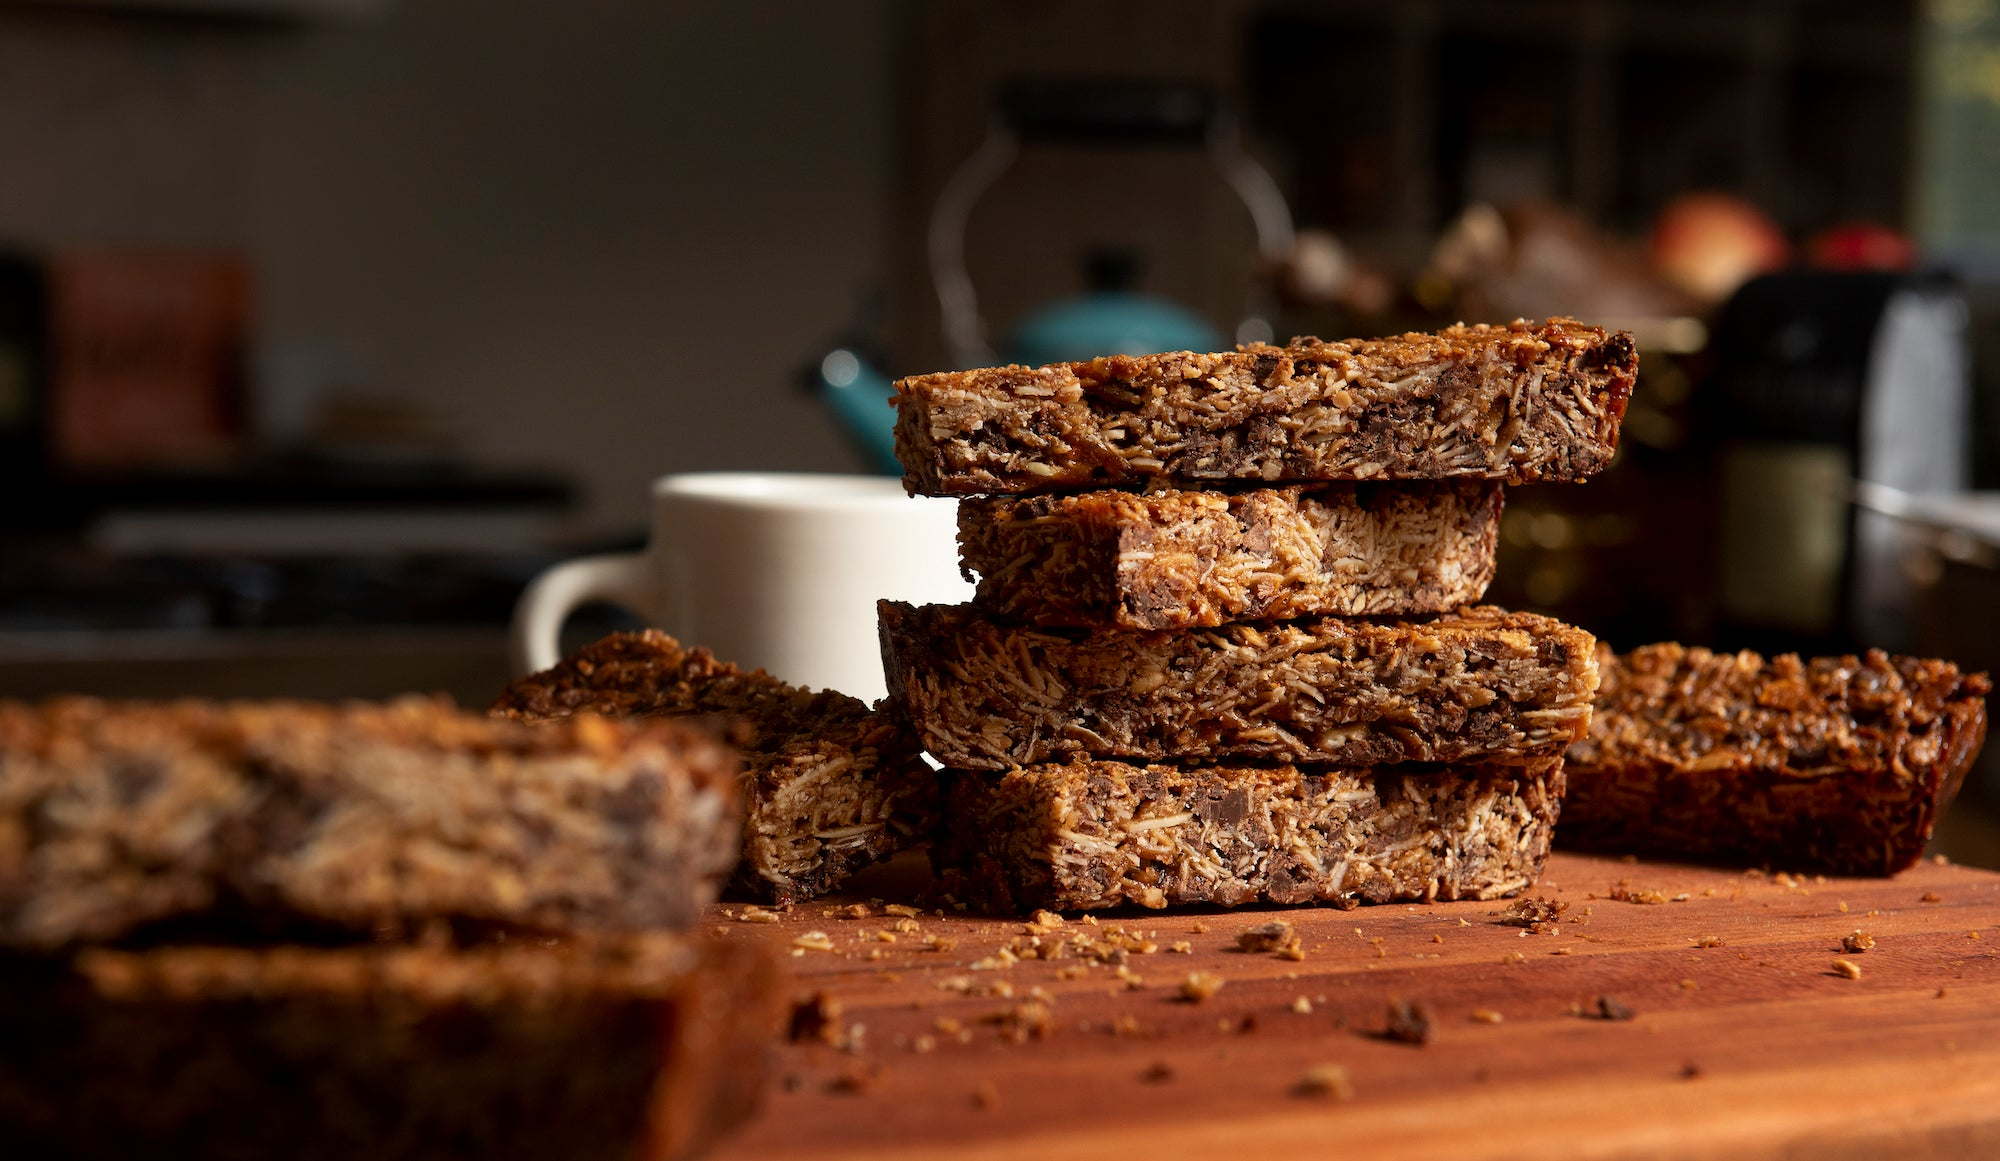 Kaldi's Coffee Granola Bar Cut Into Bars - At Home Granola Bar Recipe!